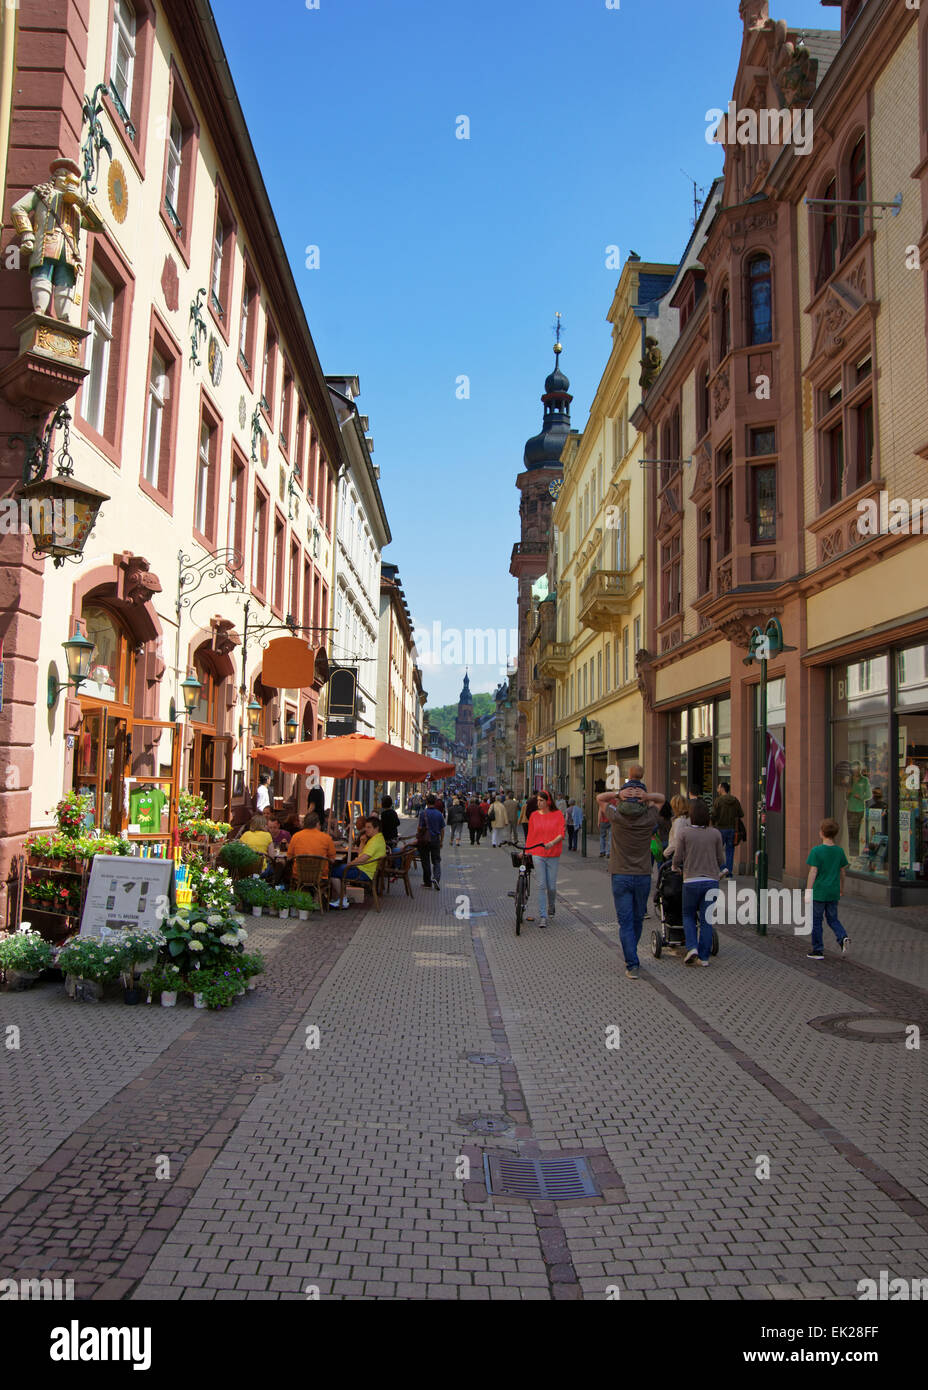 heidelberg germany may 5 2013 people walking on central stock photo 80570547 alamy. Black Bedroom Furniture Sets. Home Design Ideas